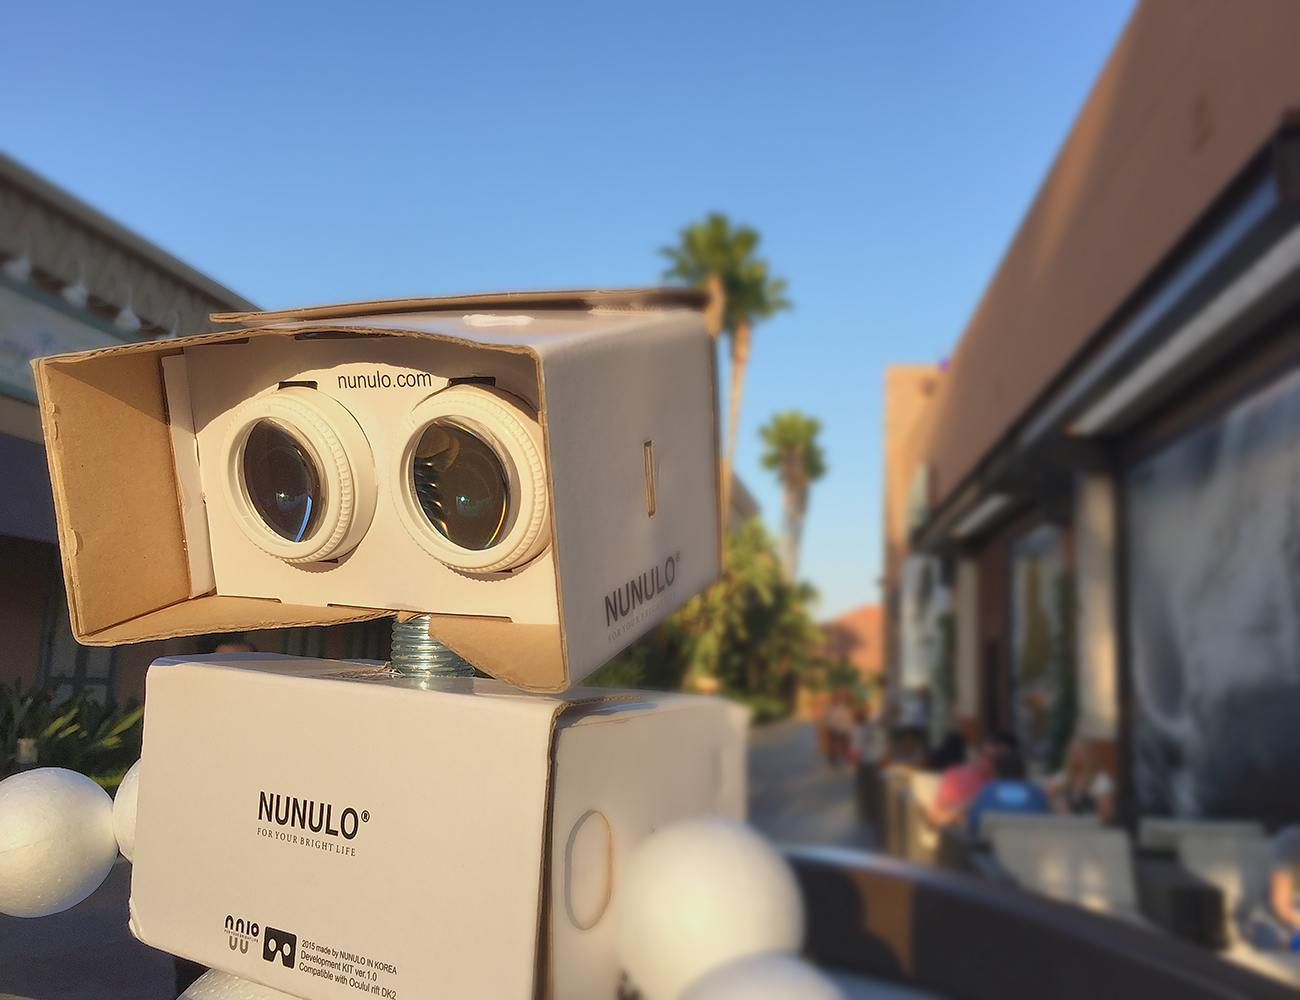 Nunulo – The First VR Device with Adjustable Lenses